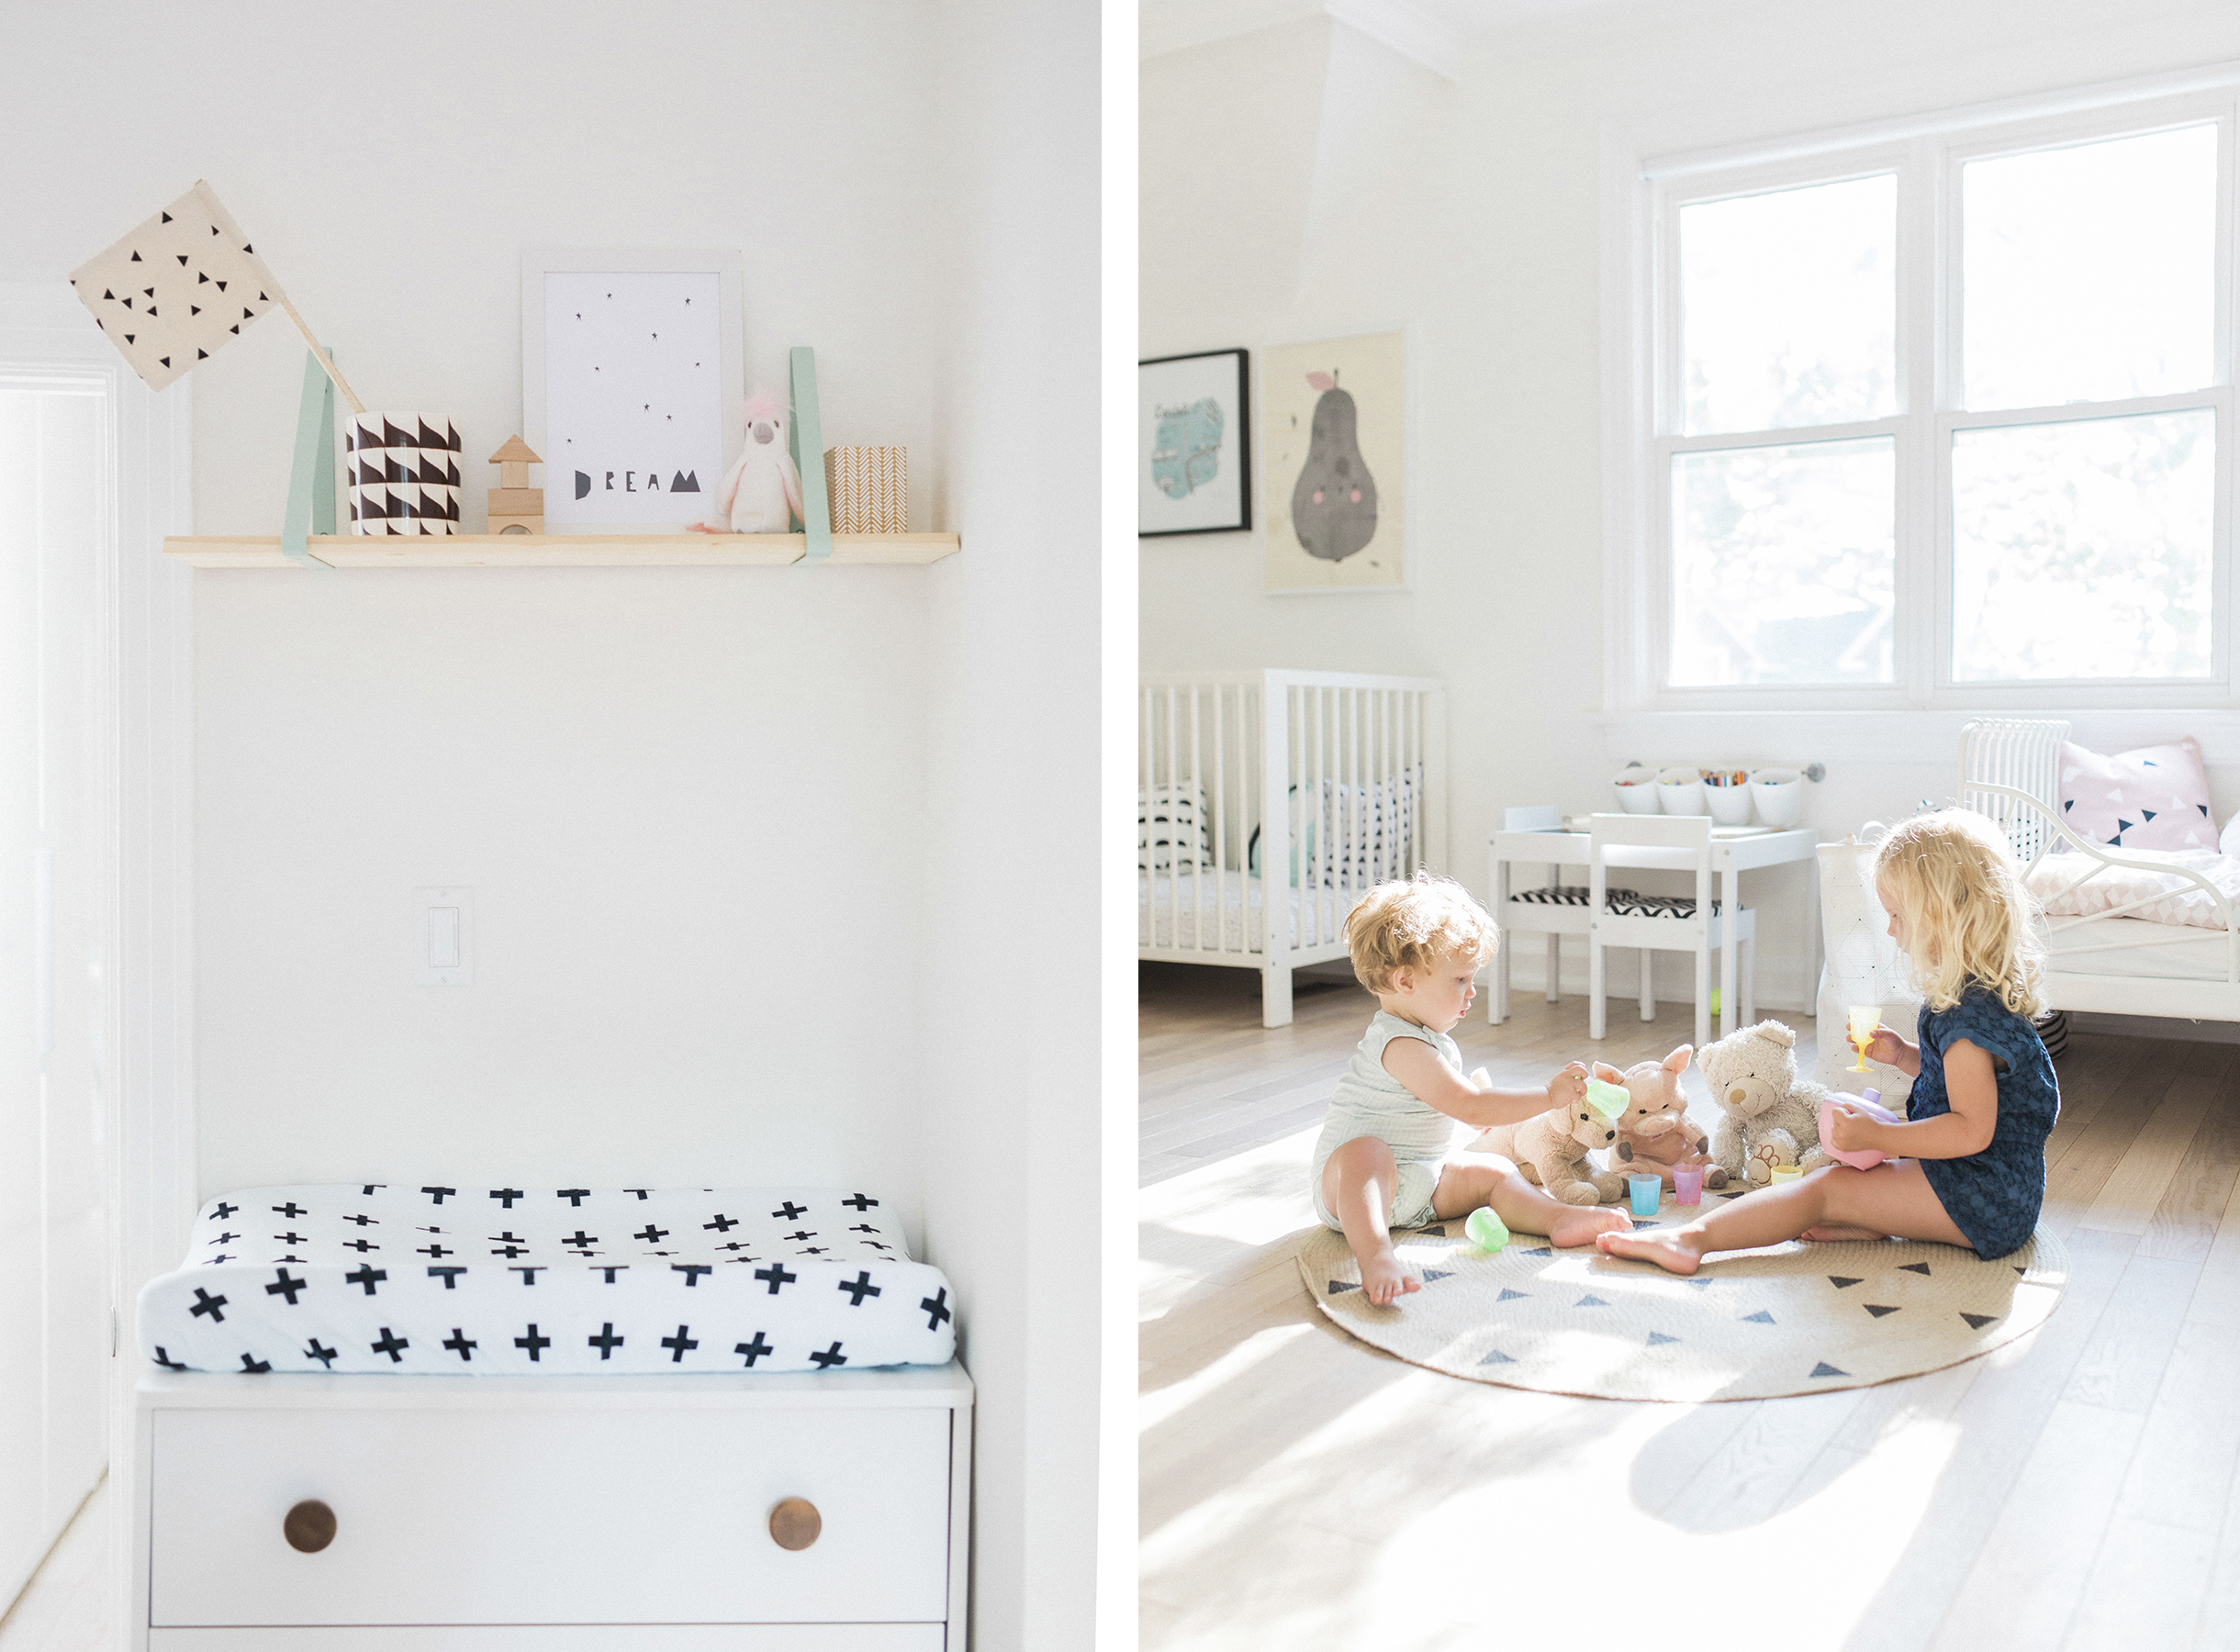 Scandinavian shared kids room - light-filled, pastel baby + toddler playroom - Ferm Living shelf brackets + round carpet | Happy Grey Lucky